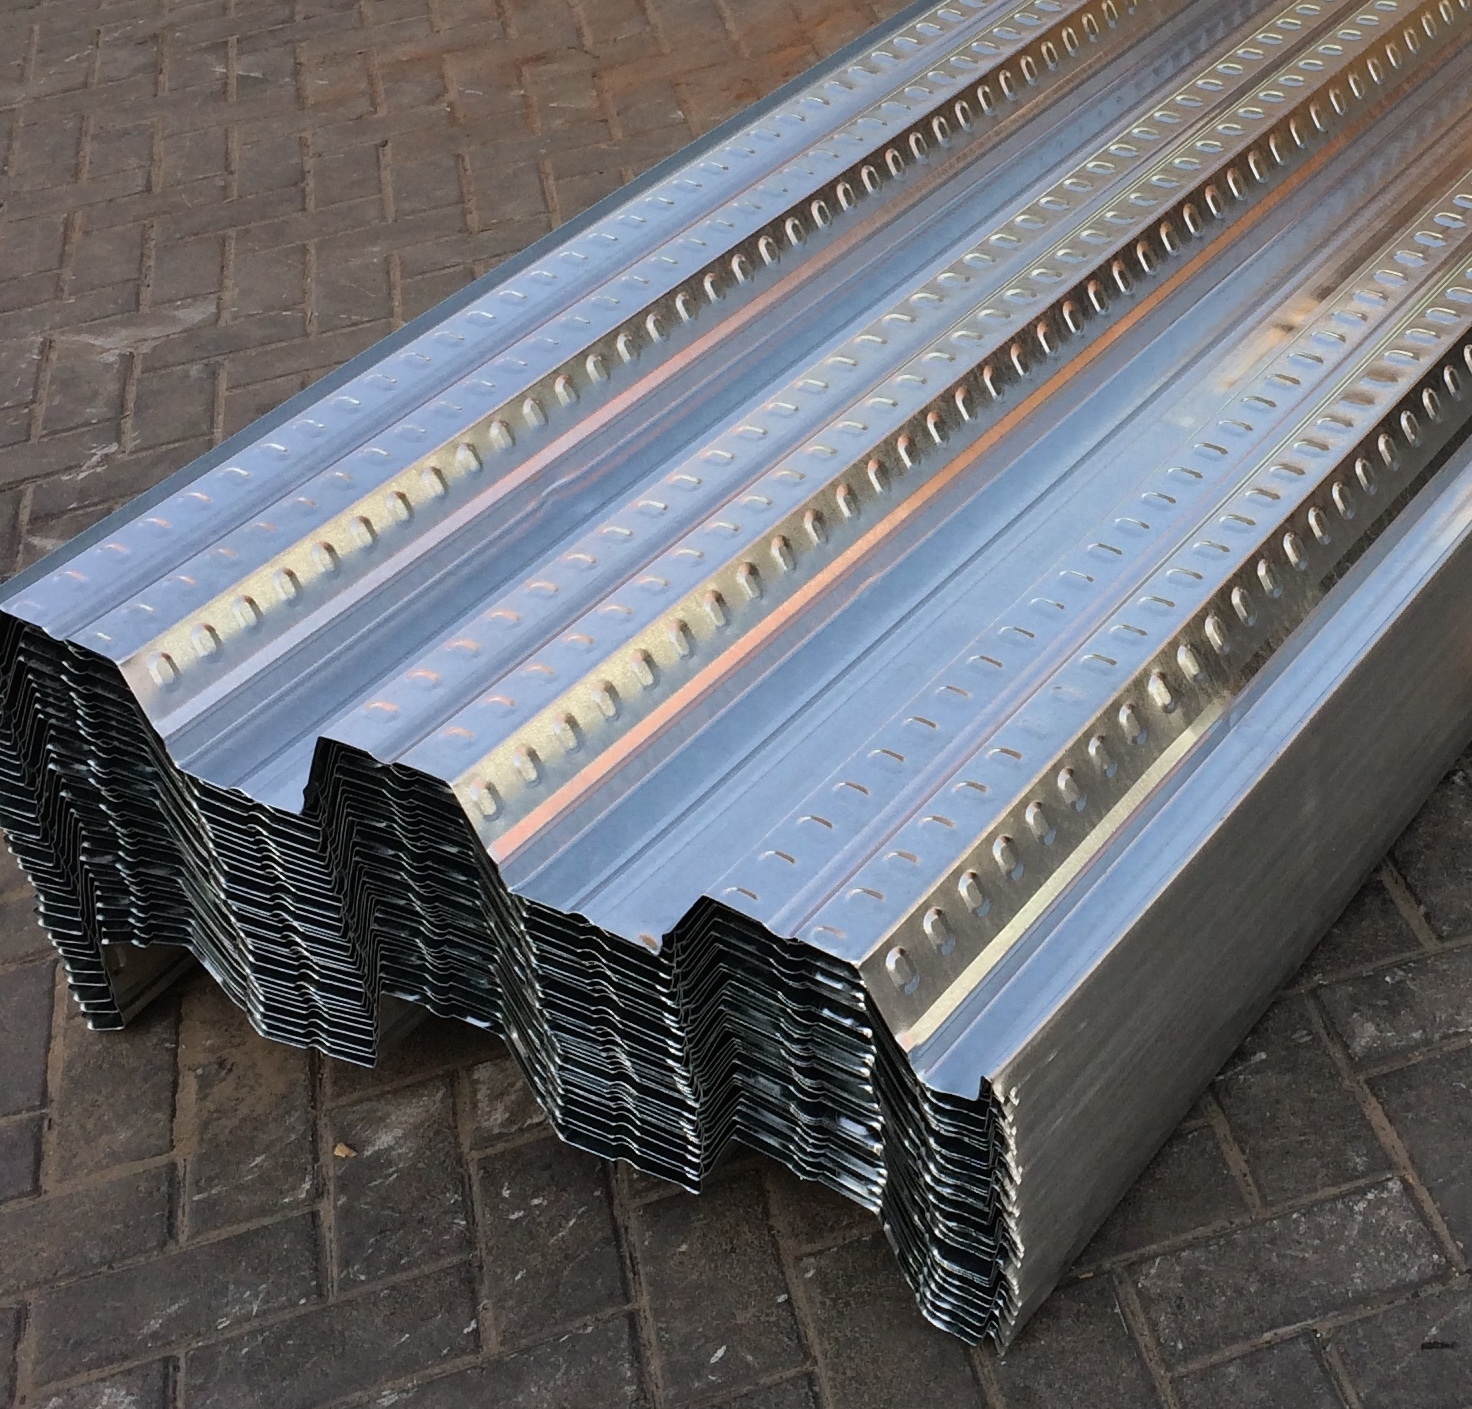 Floor Decking Sheets | Dana Steel UAE - Adding Value to